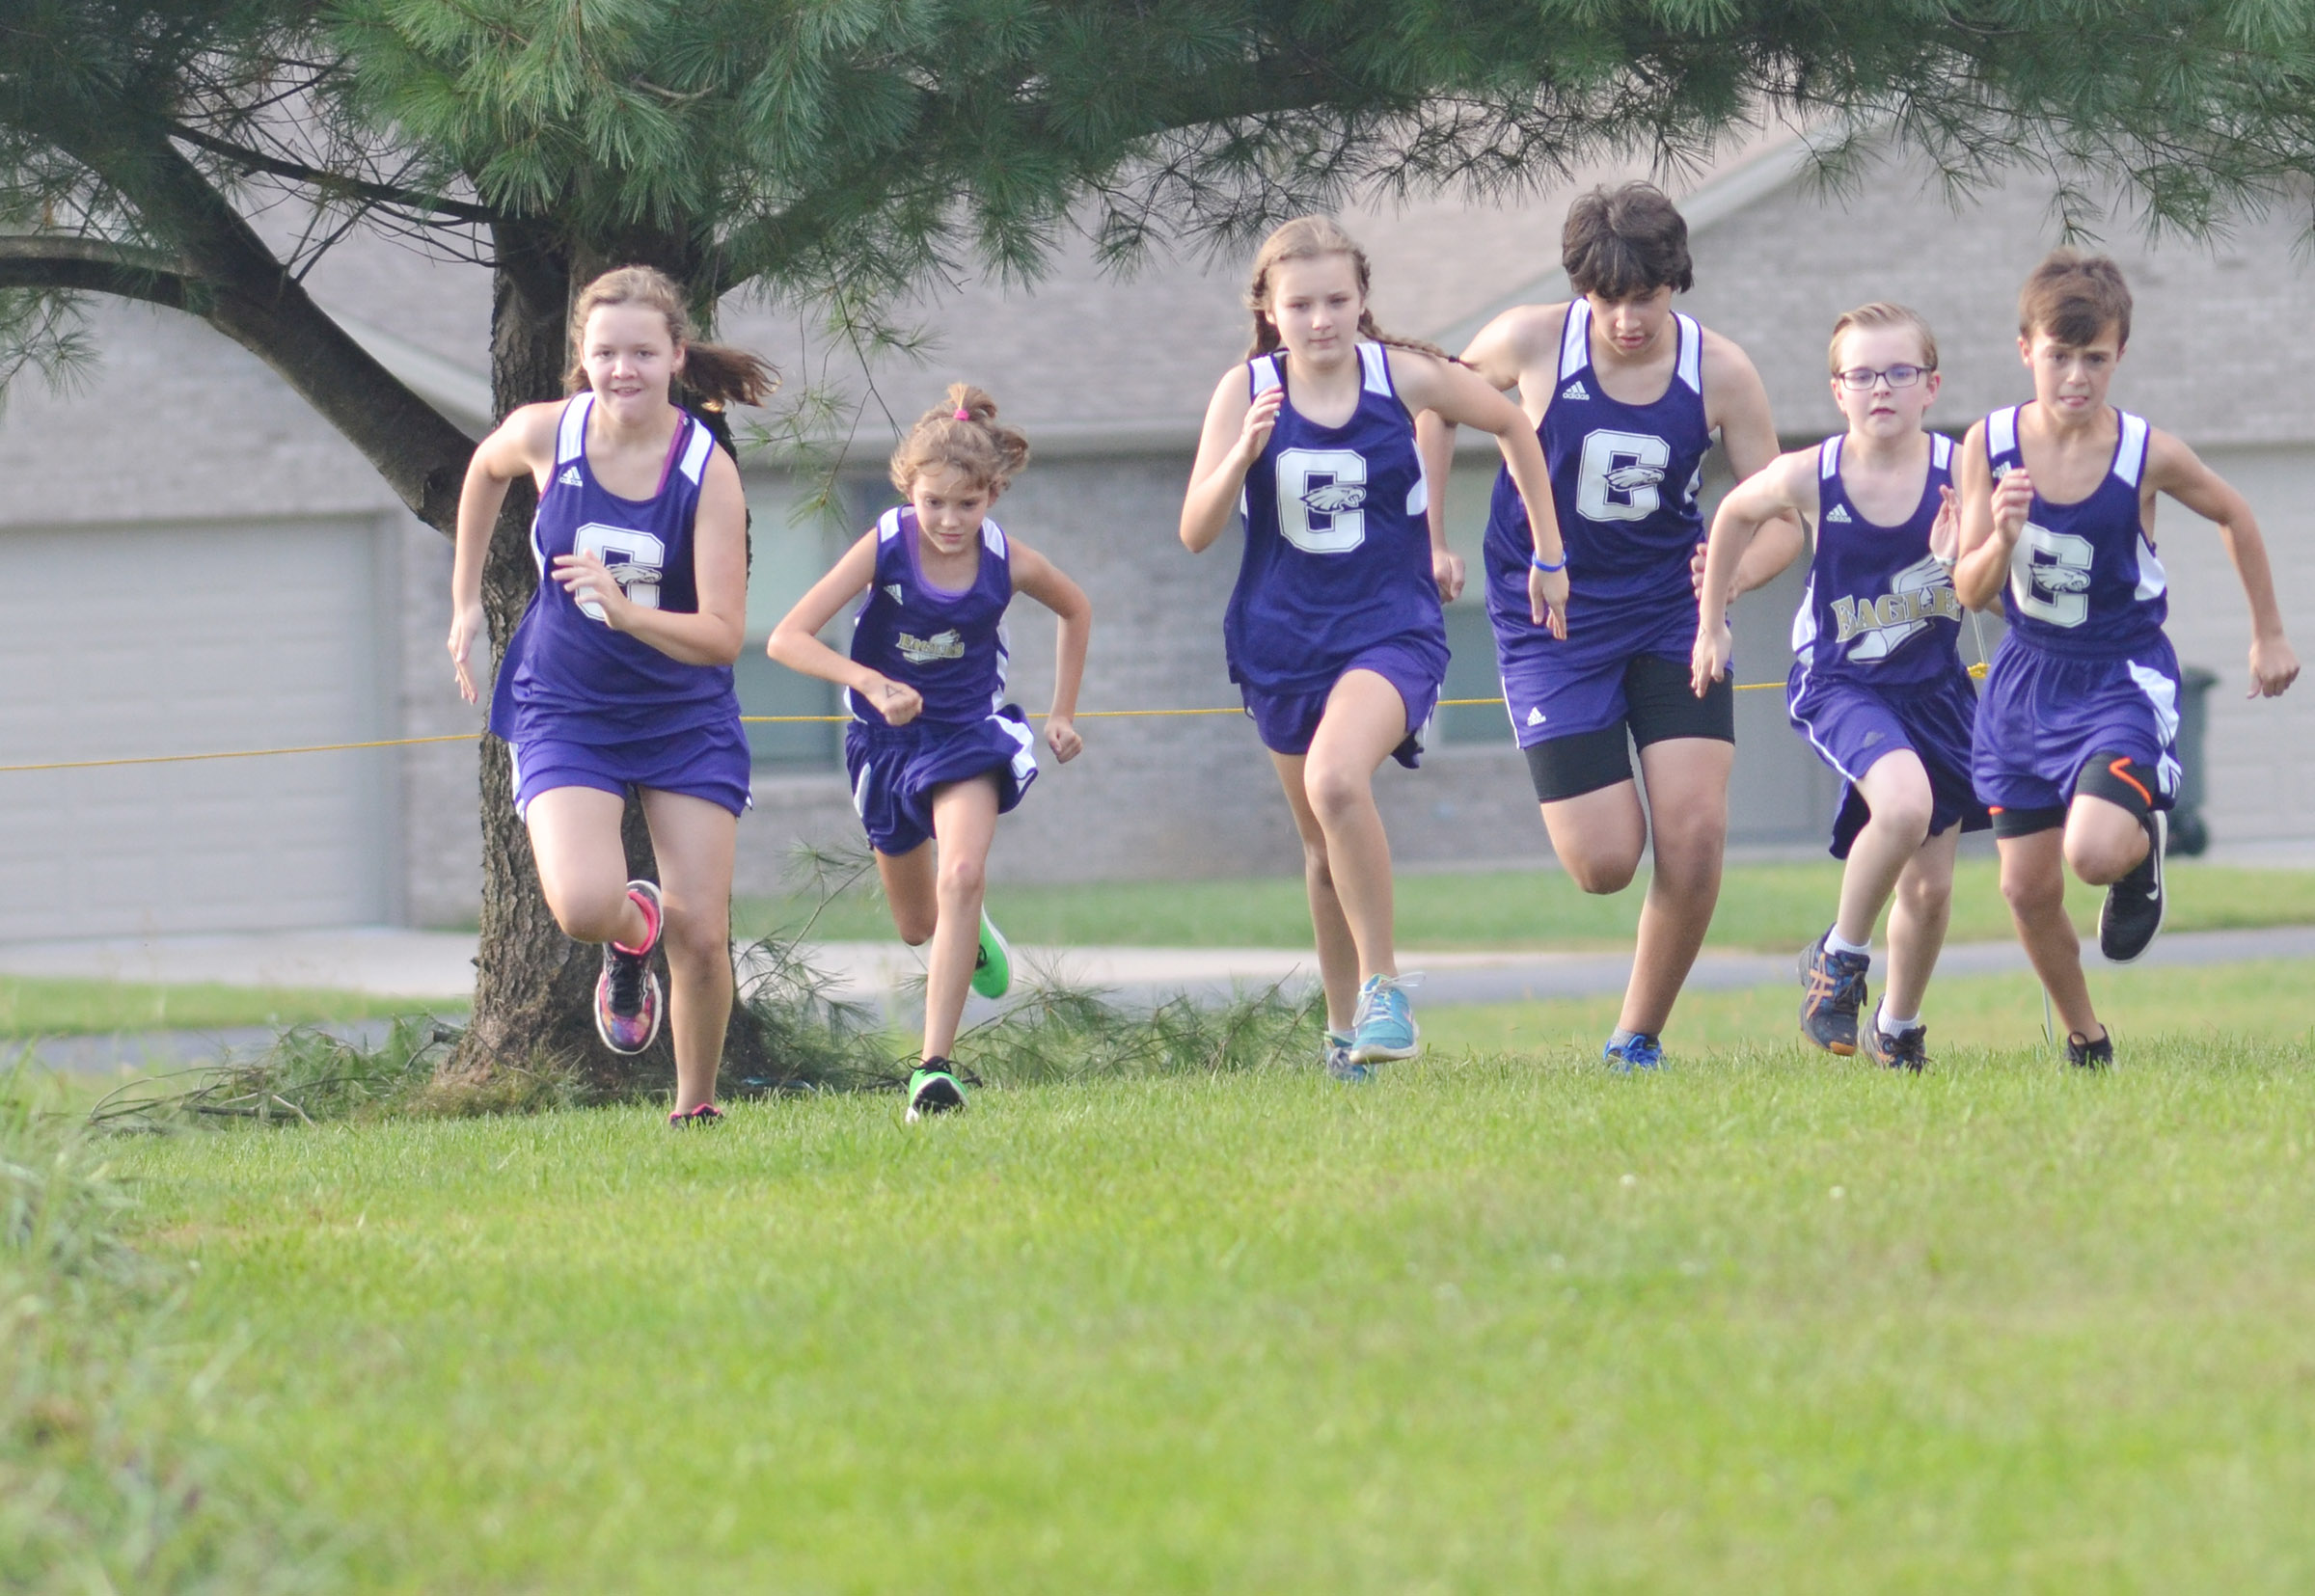 Cross country runners compete in the middle school race.